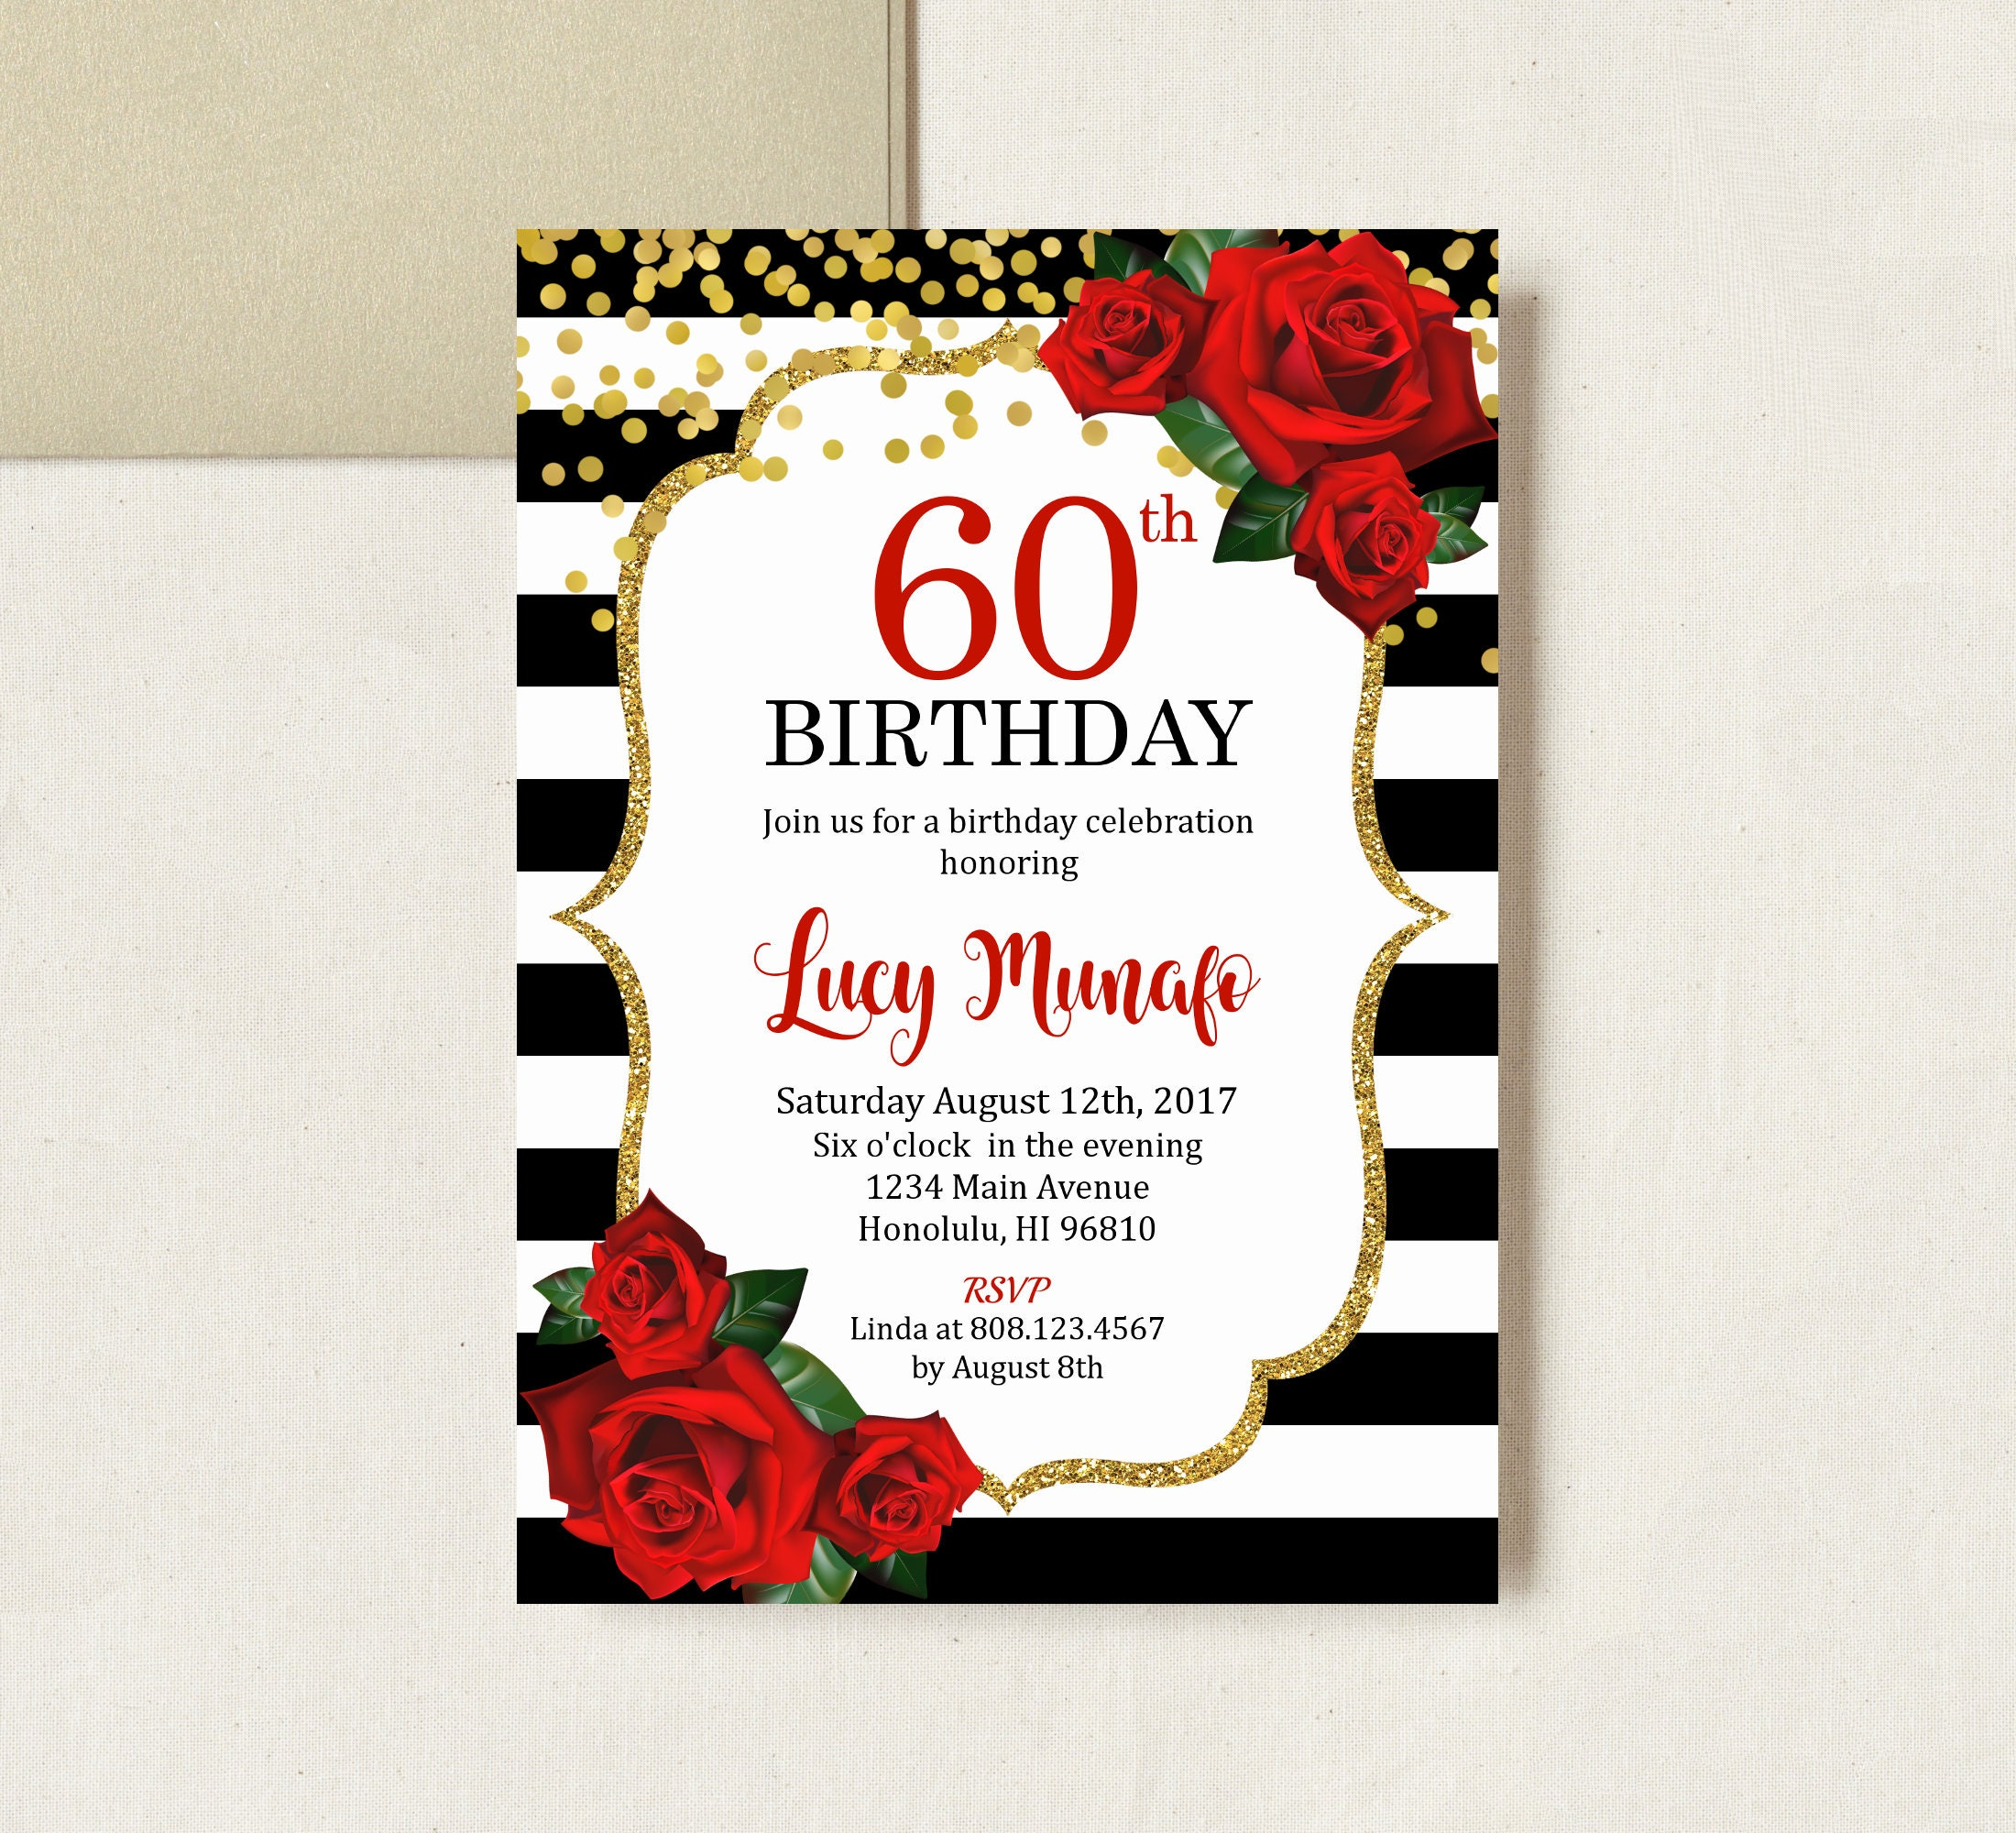 60th Birthday Invitation Women Birthday Invitation Floral Red | Etsy